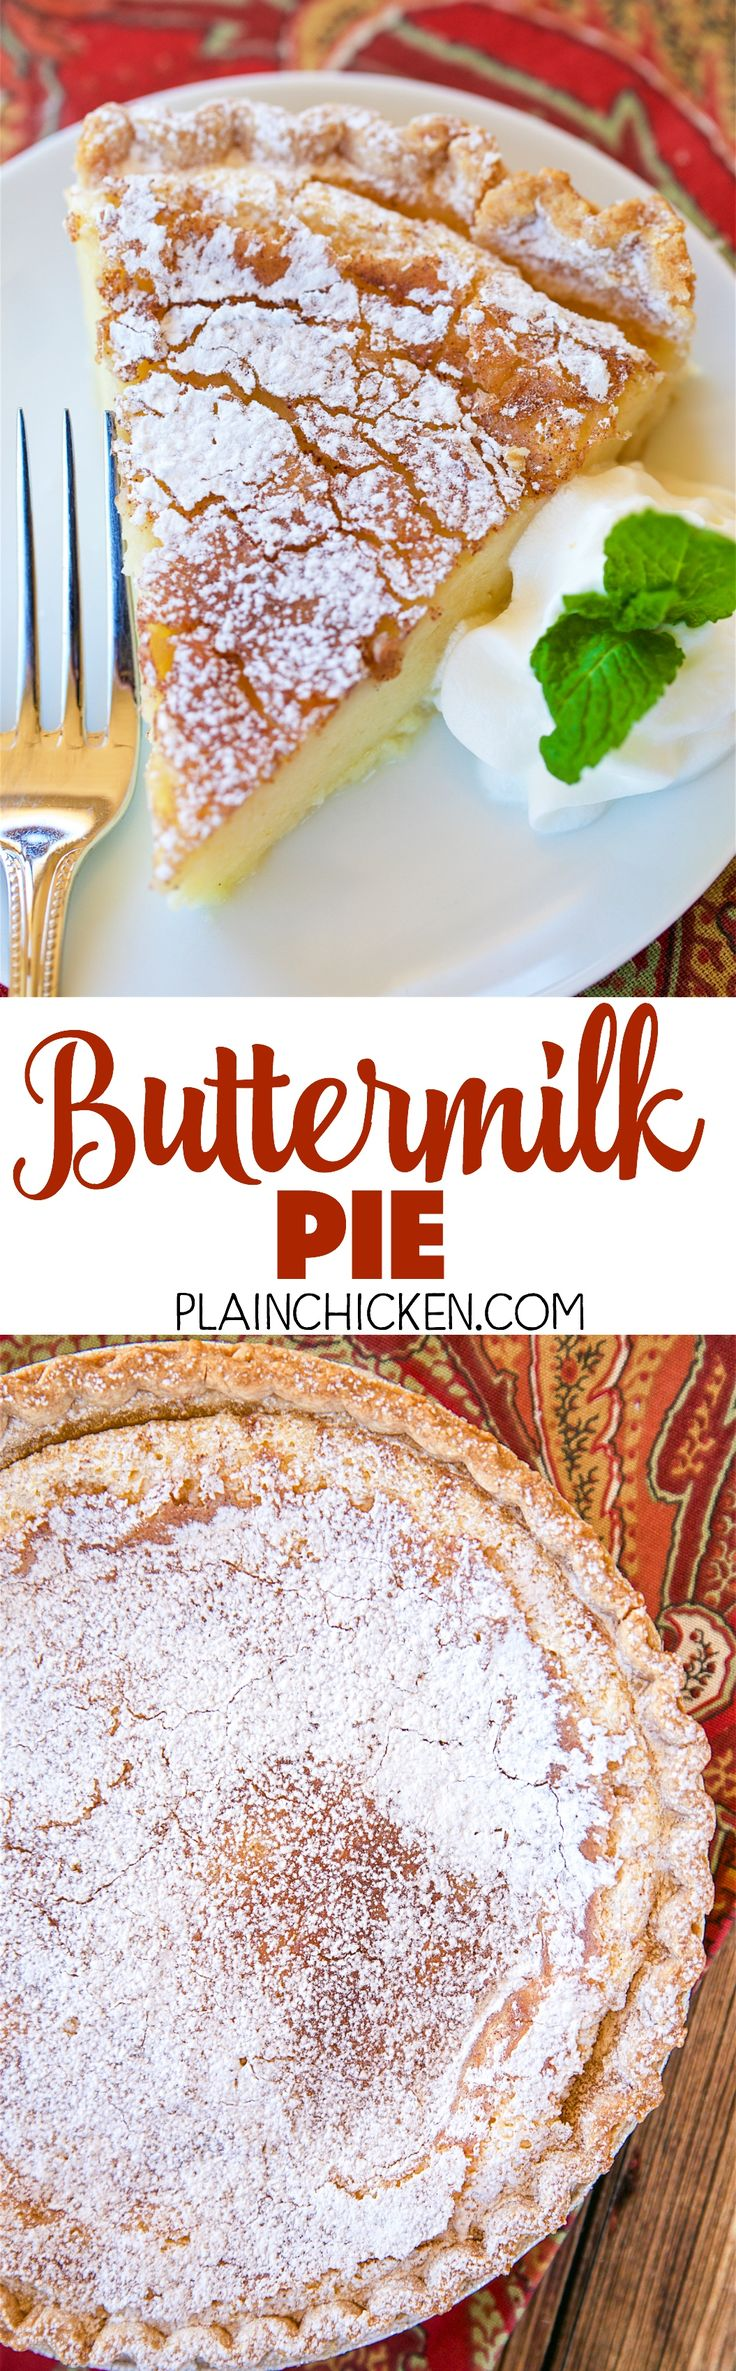 Buttermilk Pie - so simple, yet so AMAZING! Perfect ending to your holiday meal! Can make ahead of time and refrigerate until ready to serve. Eggs, sugar, flour, buttermilk, vanilla, butter, cinnamon-sugar. This pie is SO good! It is always the first thing to go!